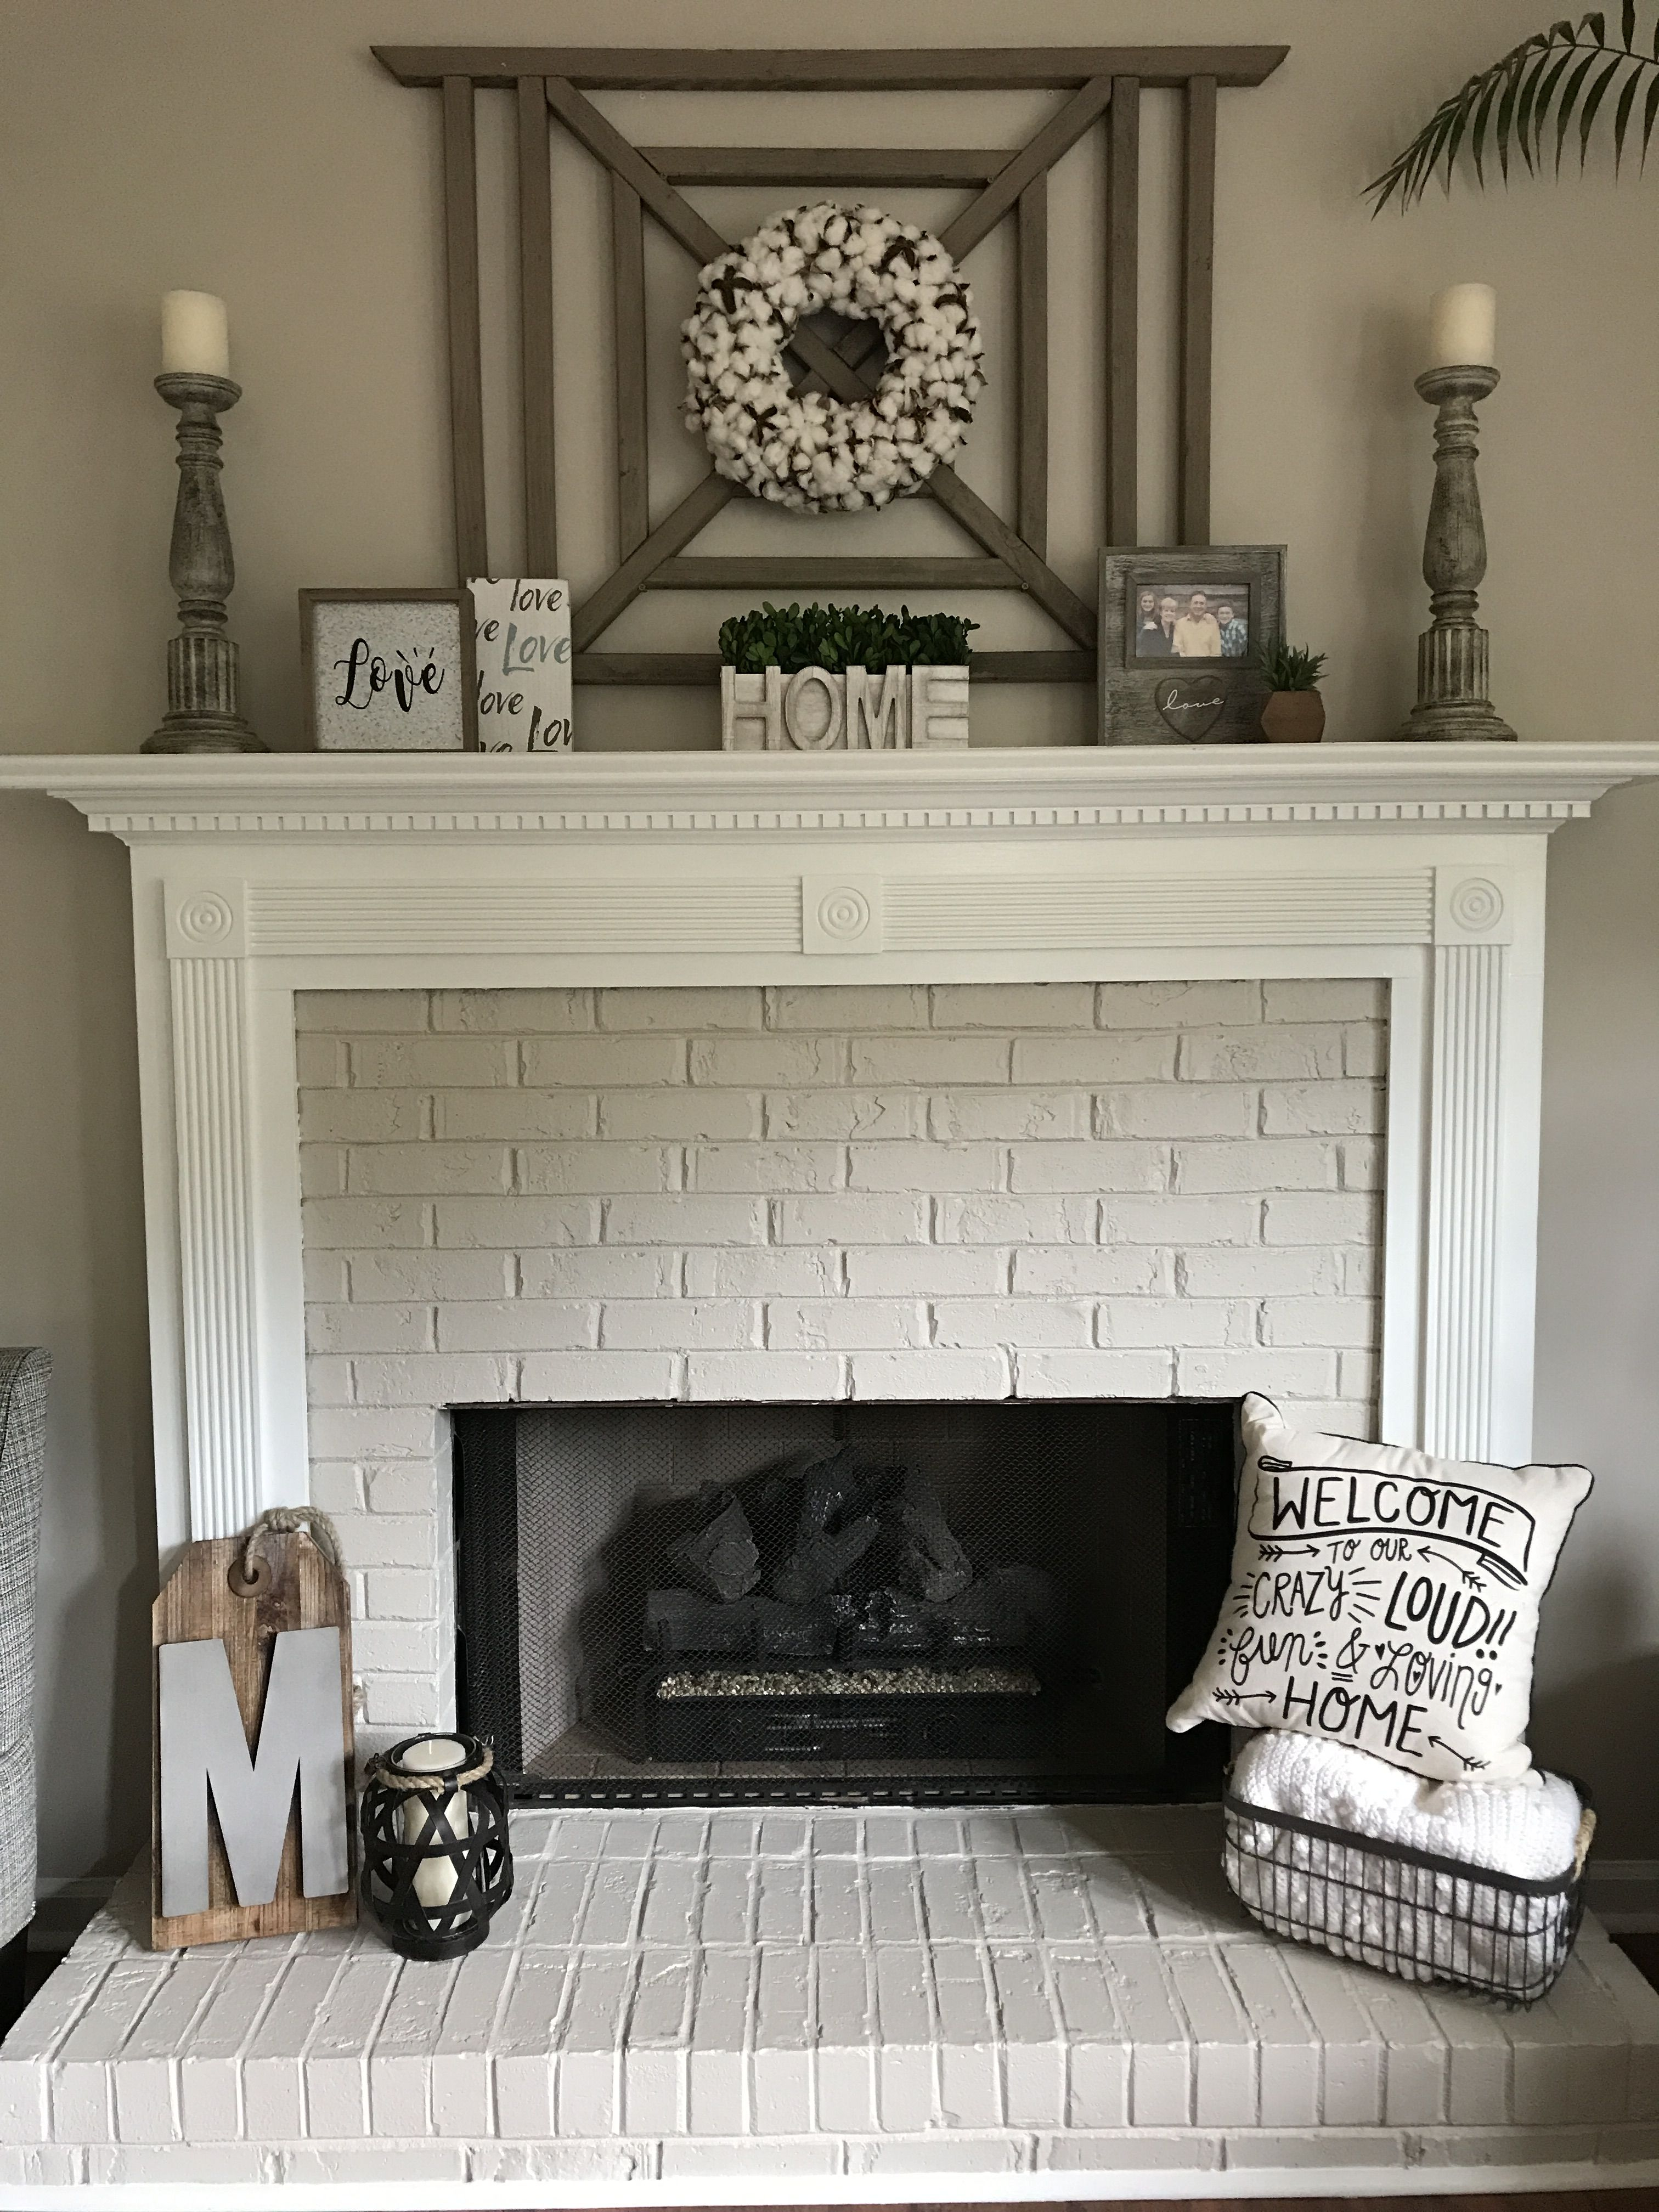 Painted Brick Fireplace And Mantle With Cotton Wreath Farmhouse Fireplace Decor Farmhouse Fireplace Mantels Painted Brick Fireplaces